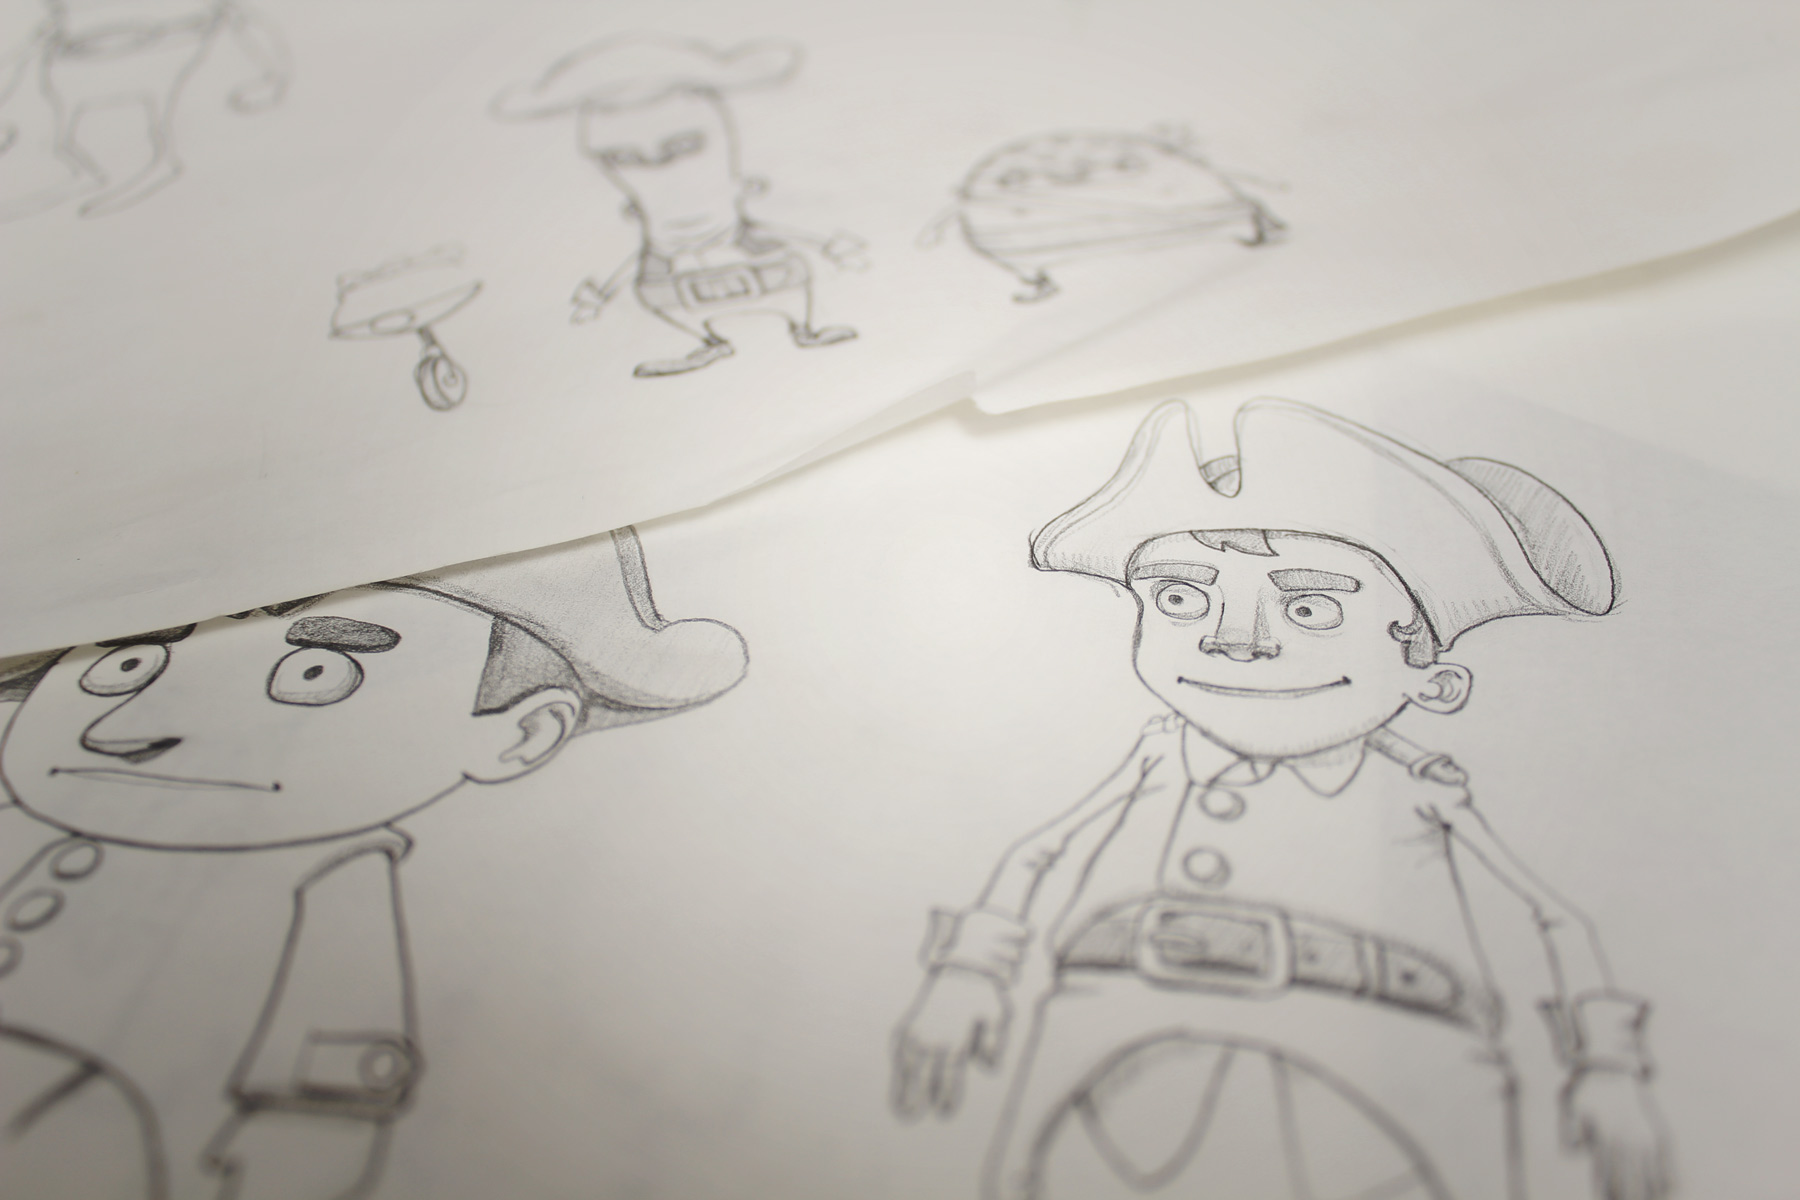 After creating the concept of a pirate adventure, we set about drawing up the plot heroes and villains.